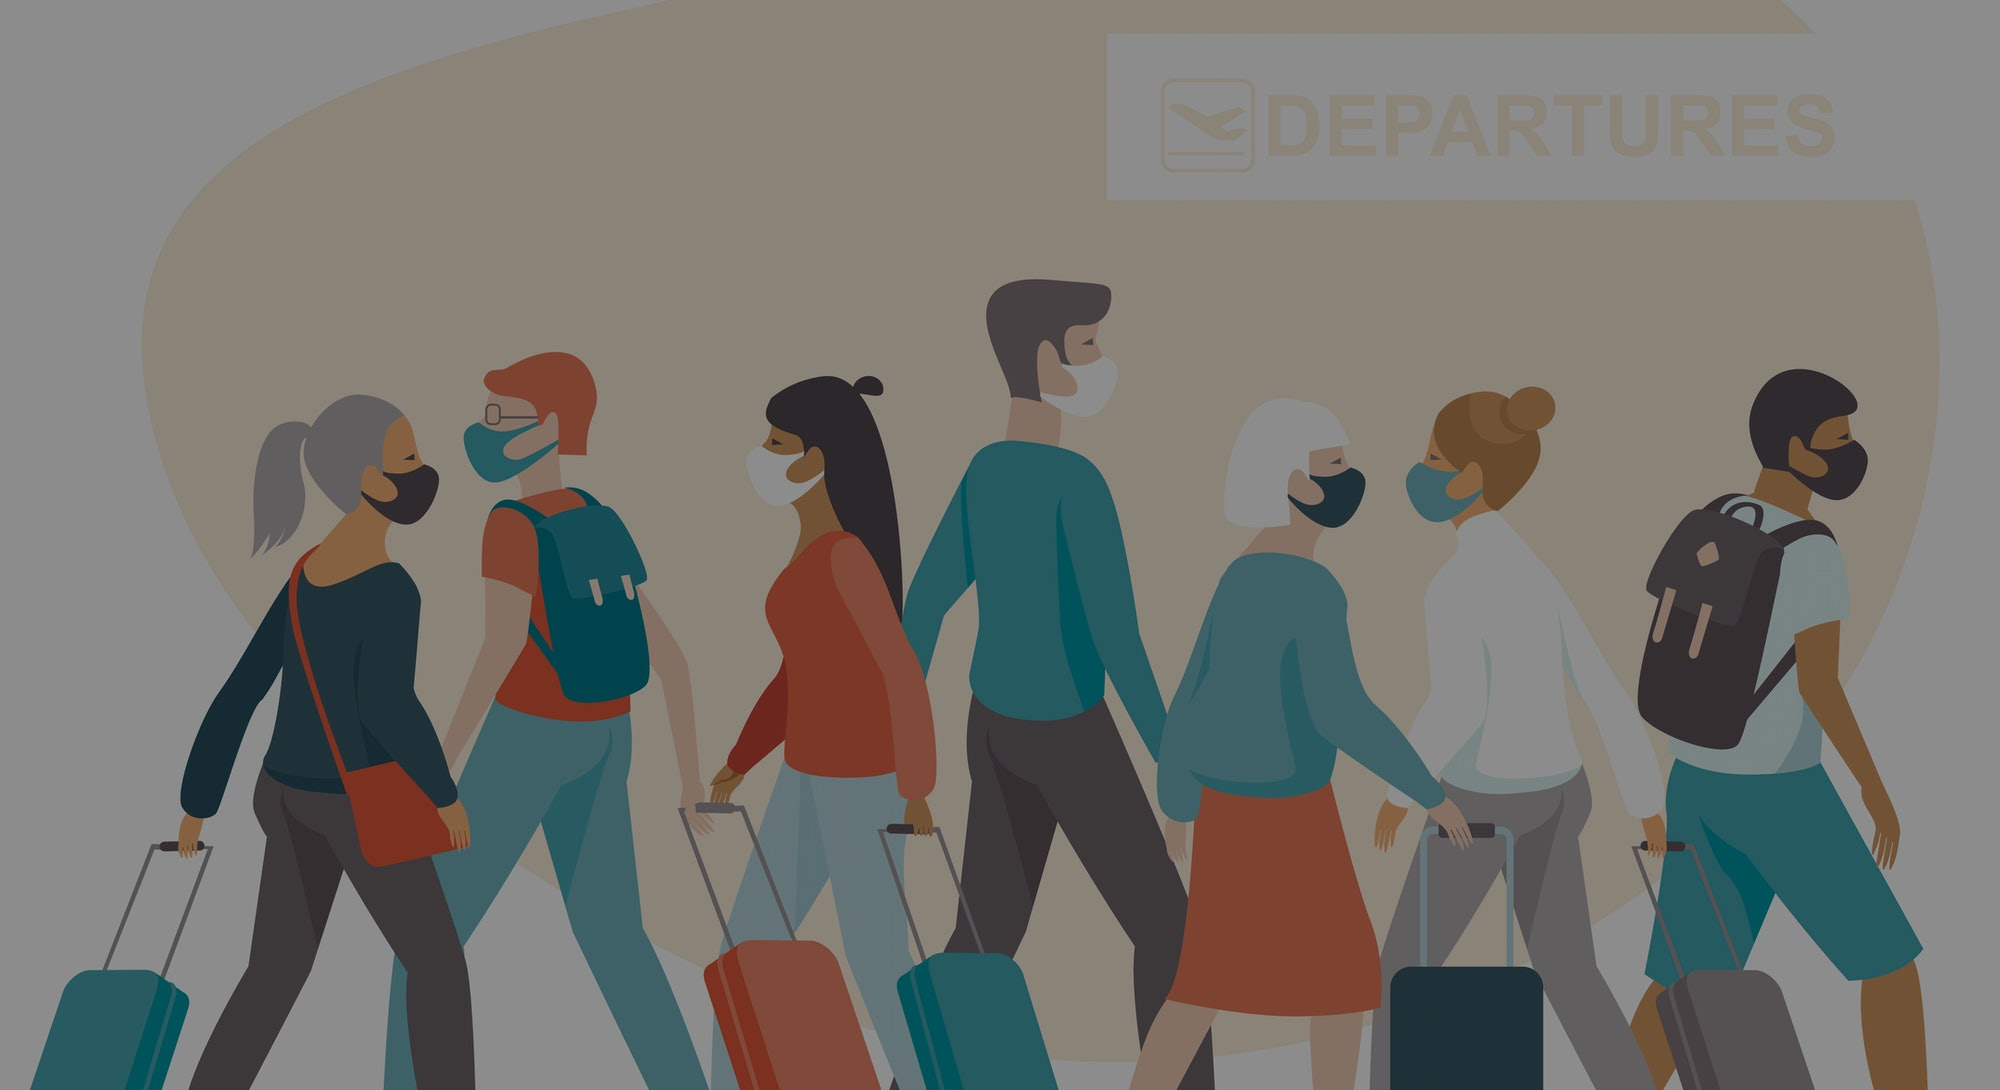 Crowd of passengers wearing protective medical masks in airport departure area. Travel during coronavirus COVID-19 disease outbreak. Concept flat vector illustration